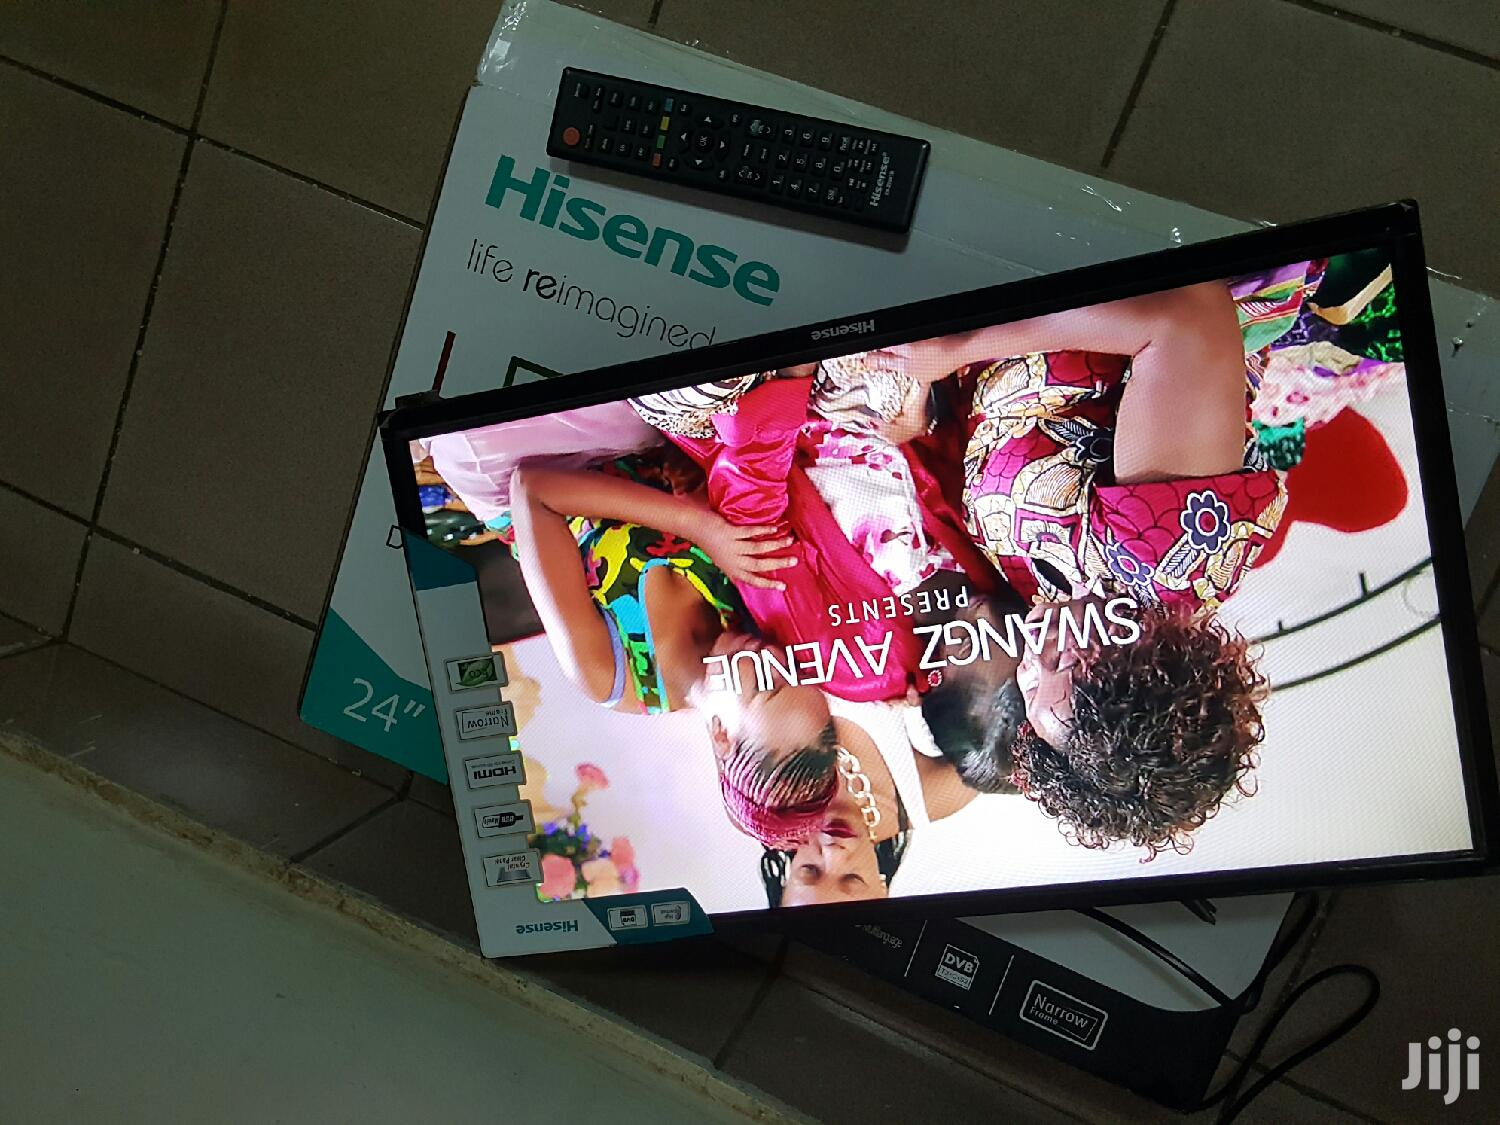 Archive: 32inches Hisense Digital and Satellite Flat Screen TV